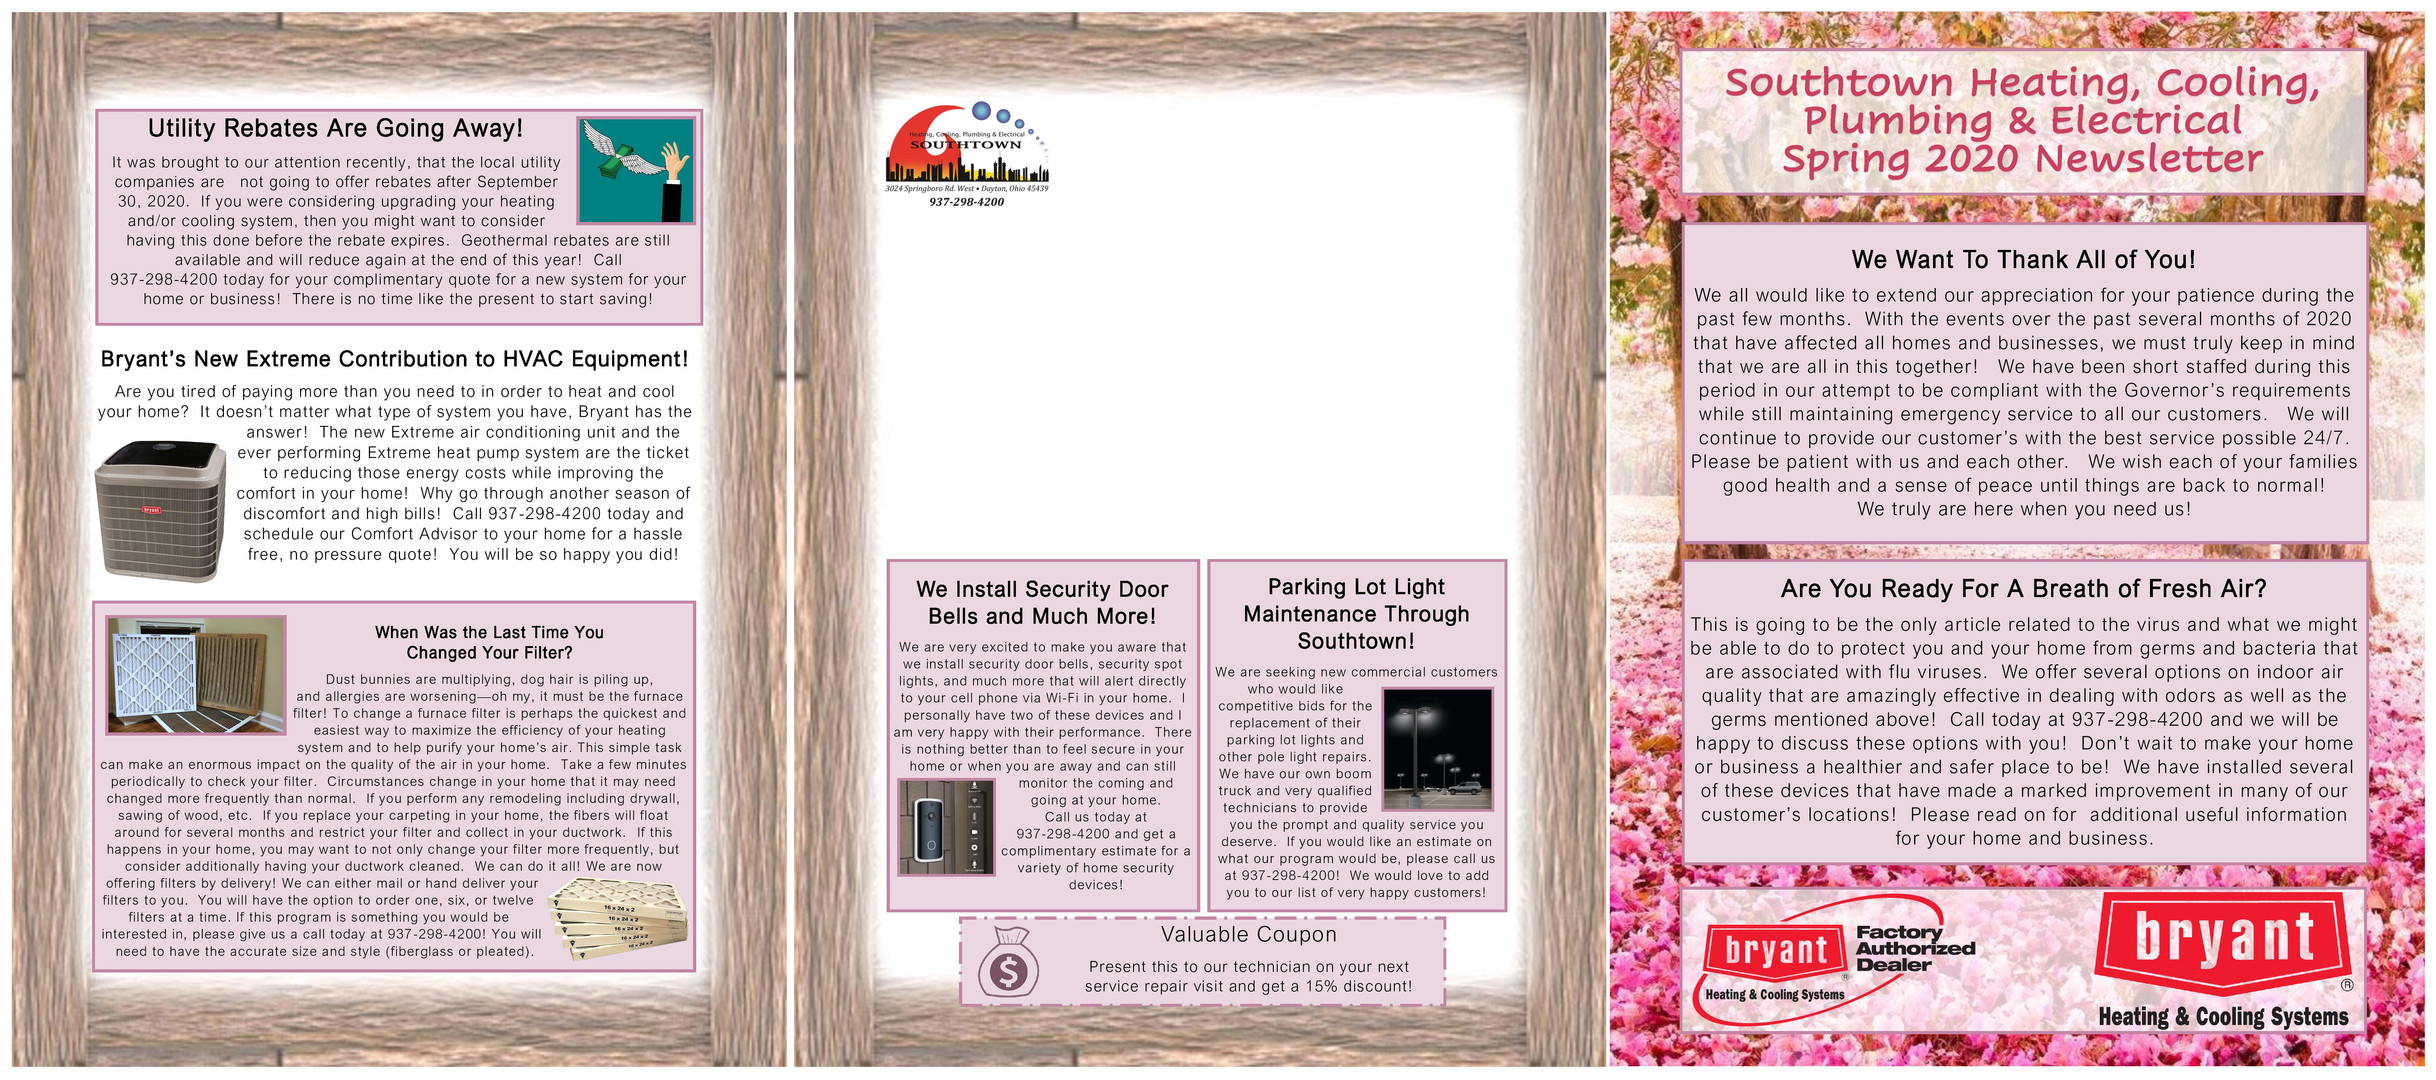 outside_springnewsletter_20-page-001.jpg